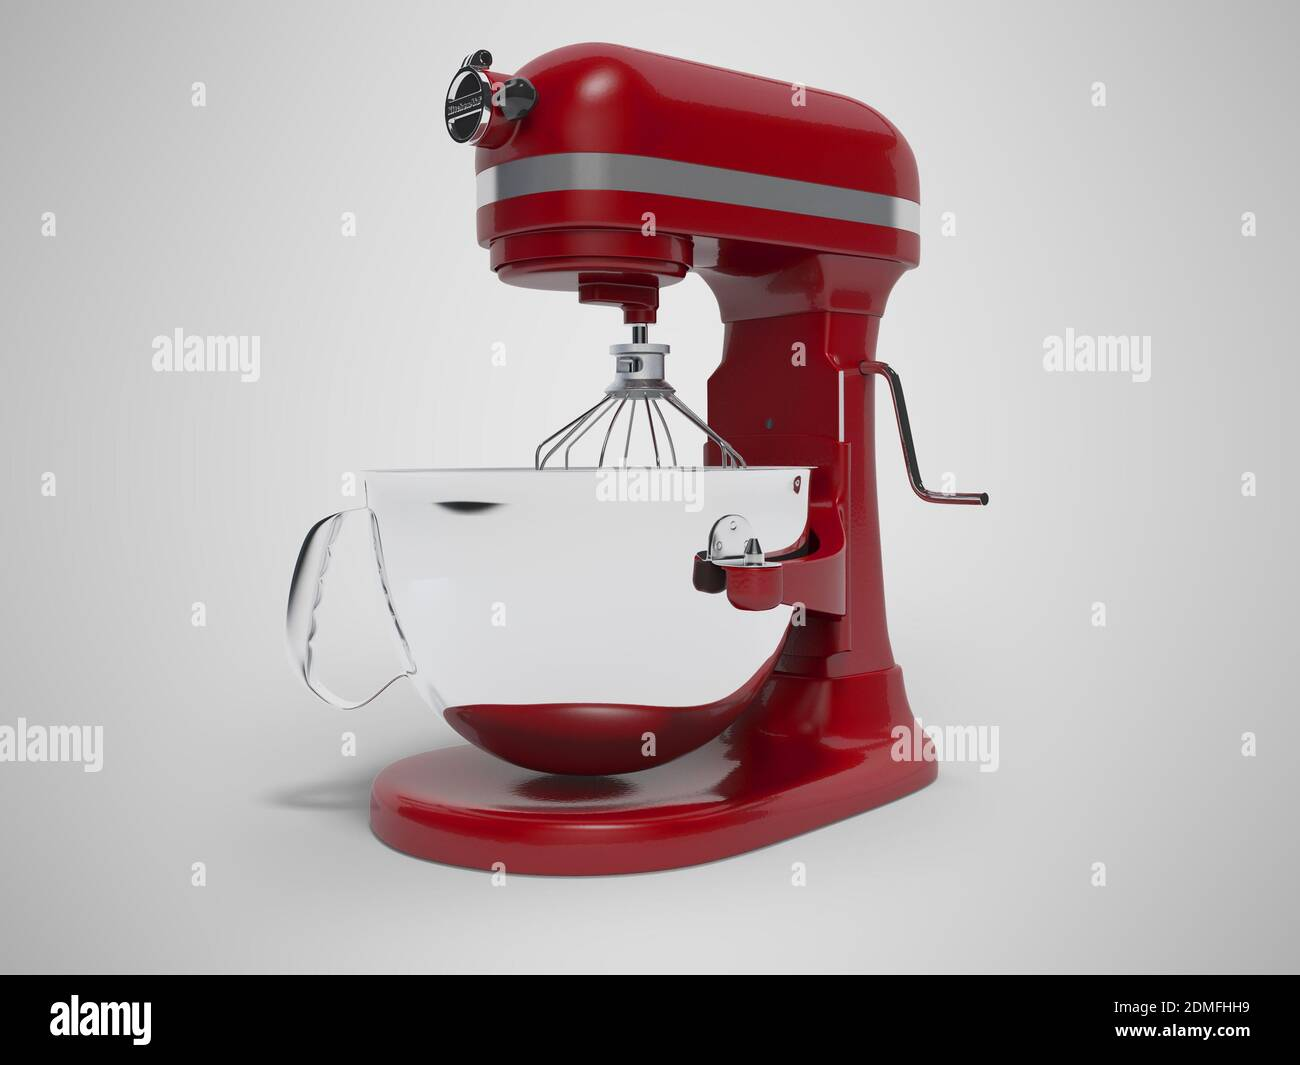 Page 8   Mechanical Mixer High Resolution Stock Photography and ...